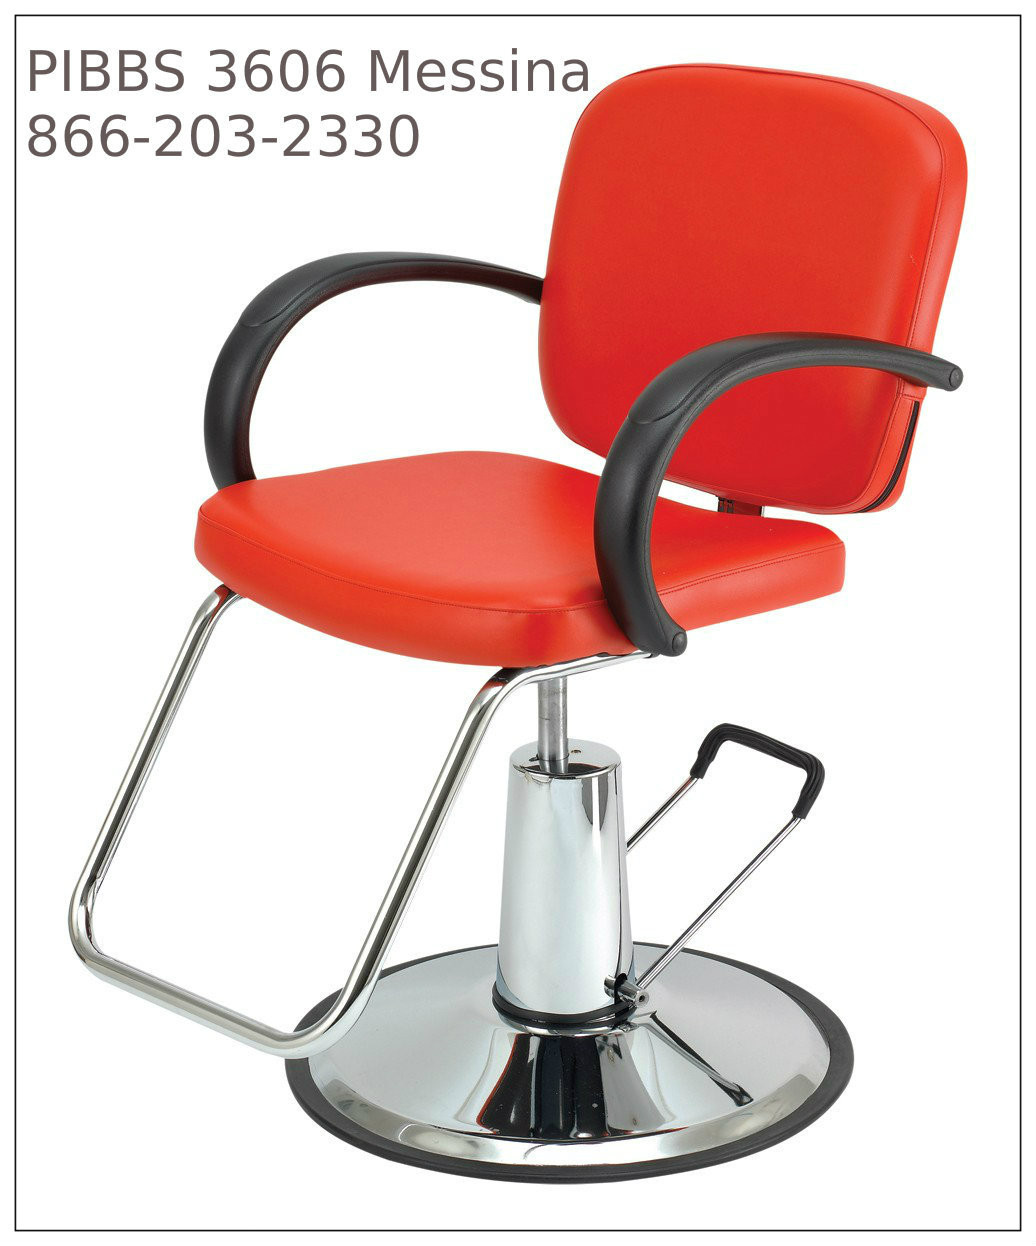 Hydraulic Styling Chair Messina 3606 Styling Chair